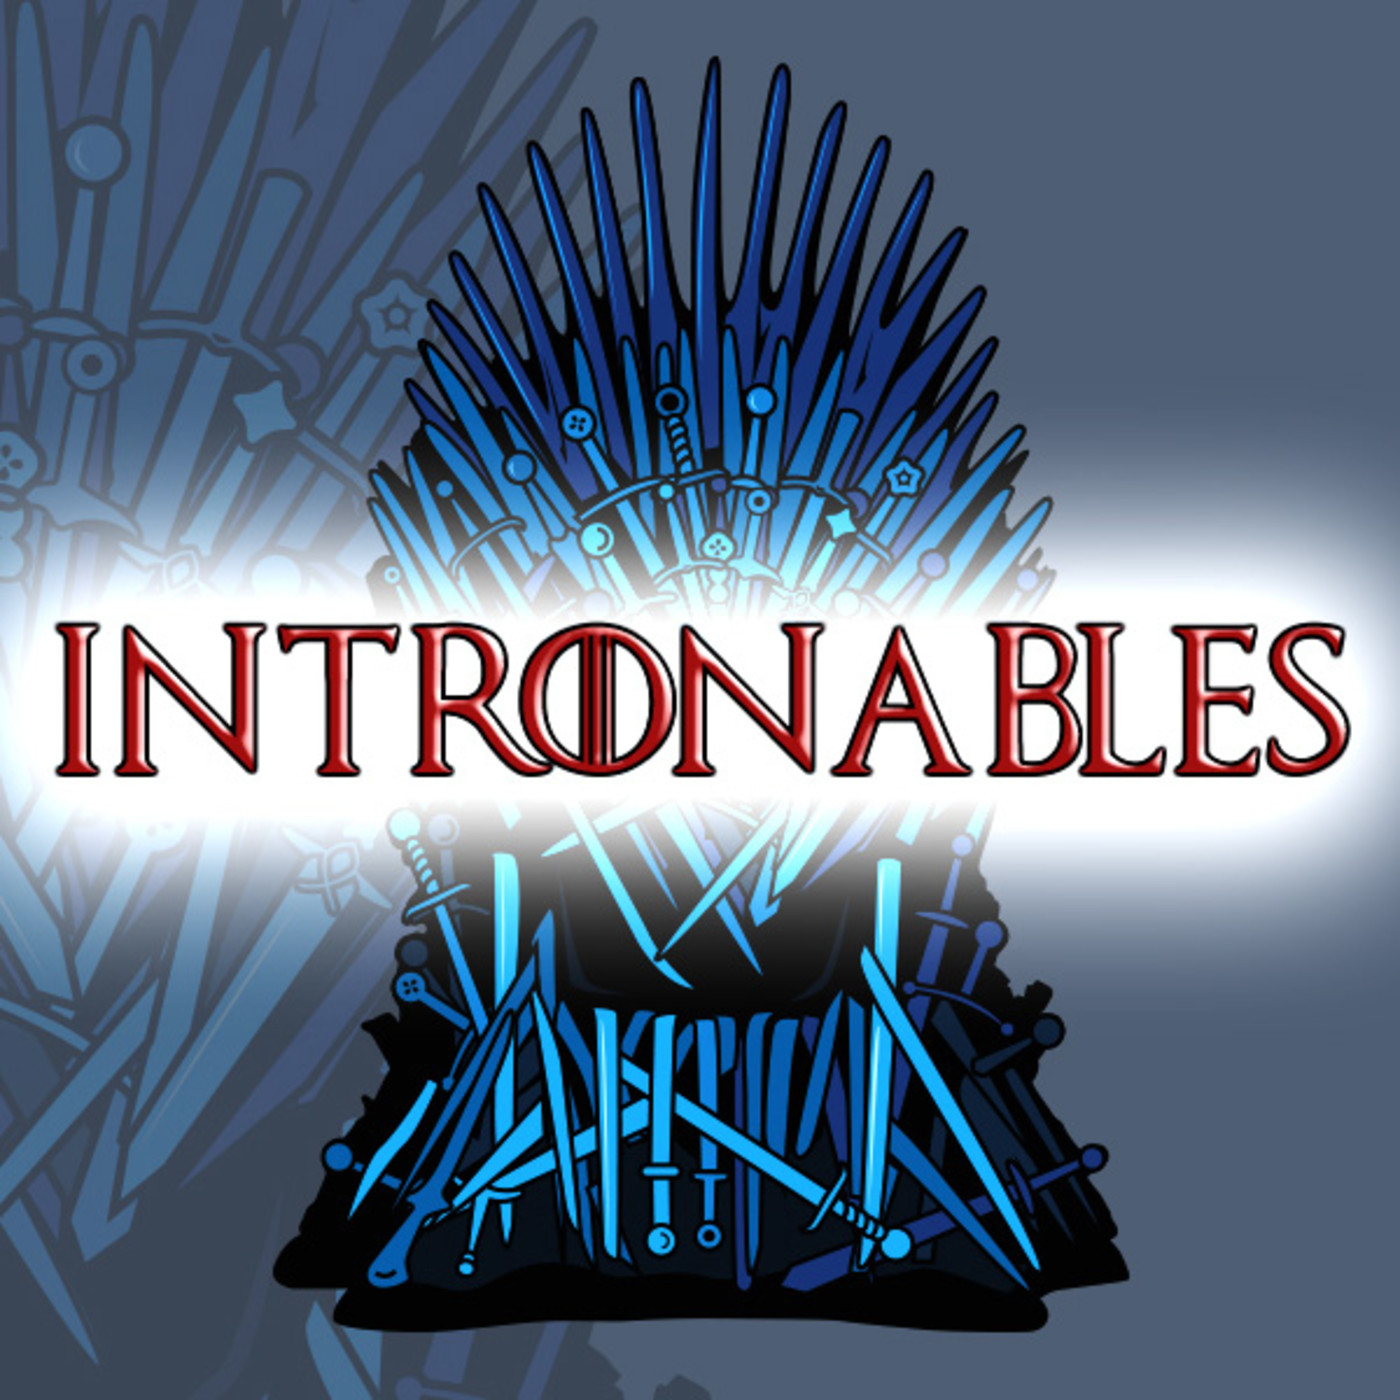 Intronables